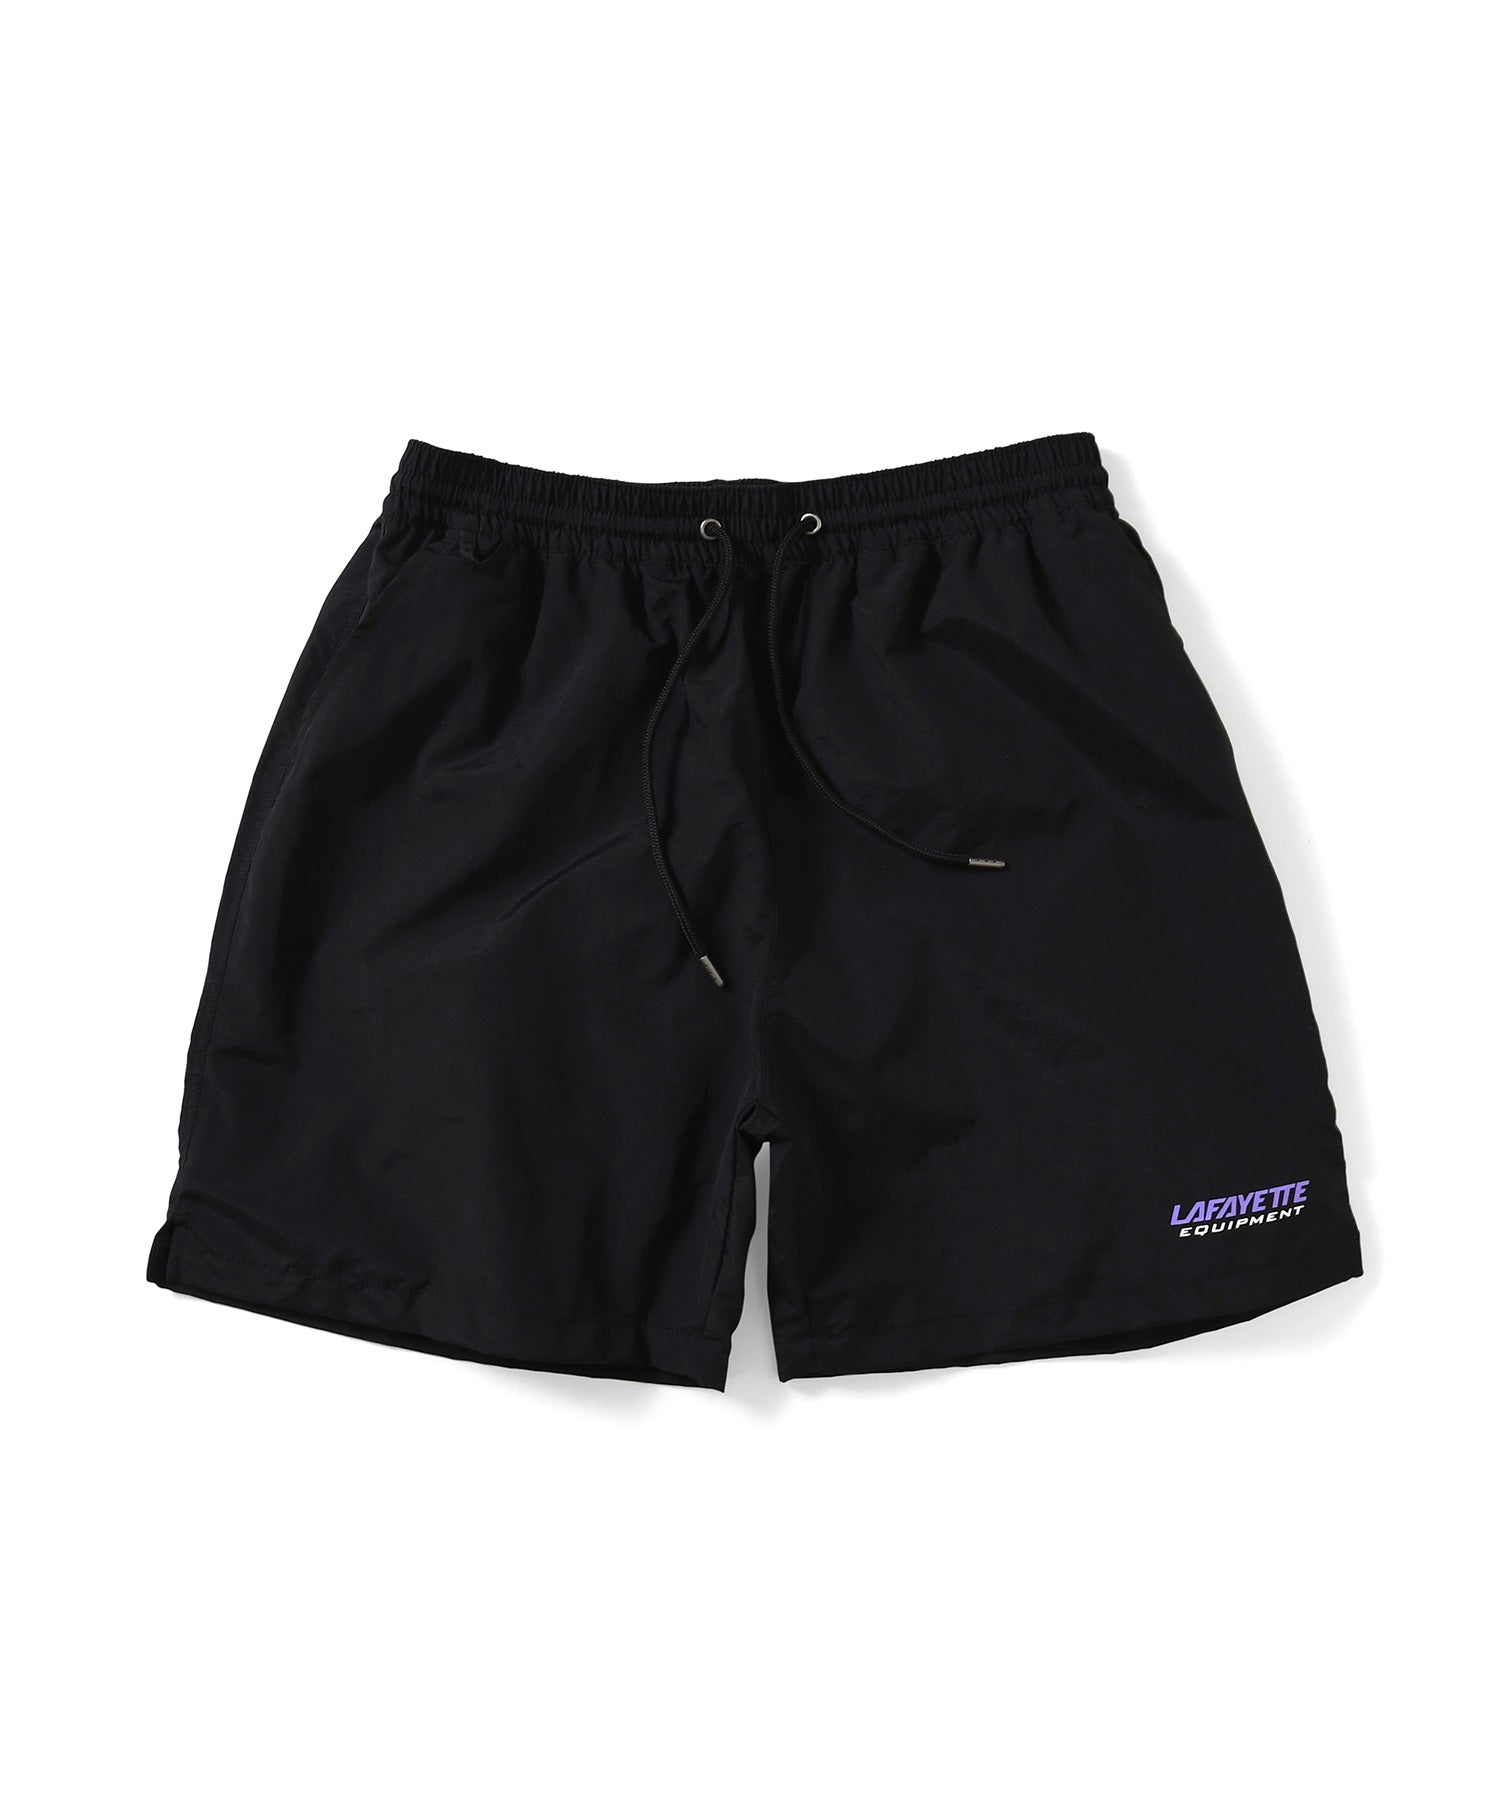 Lafayette EQUIPMENT LOGO NYLON SHORTS LS201308 BLACK